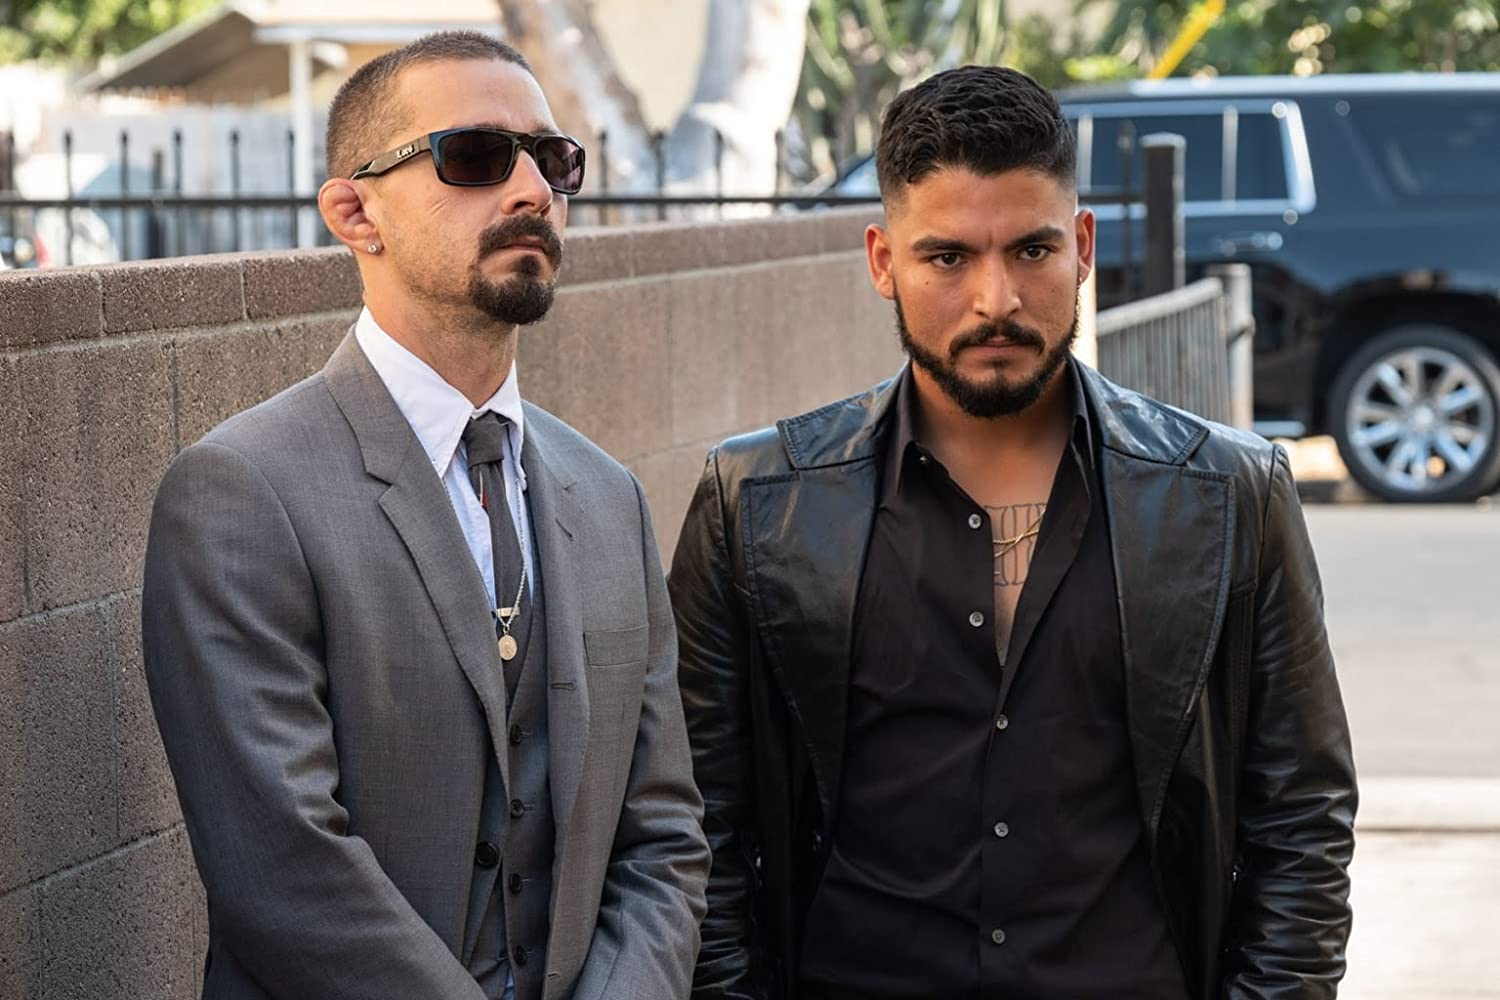 Shia LaBeouf and Bobby Soto in The Tax Collector (2020)